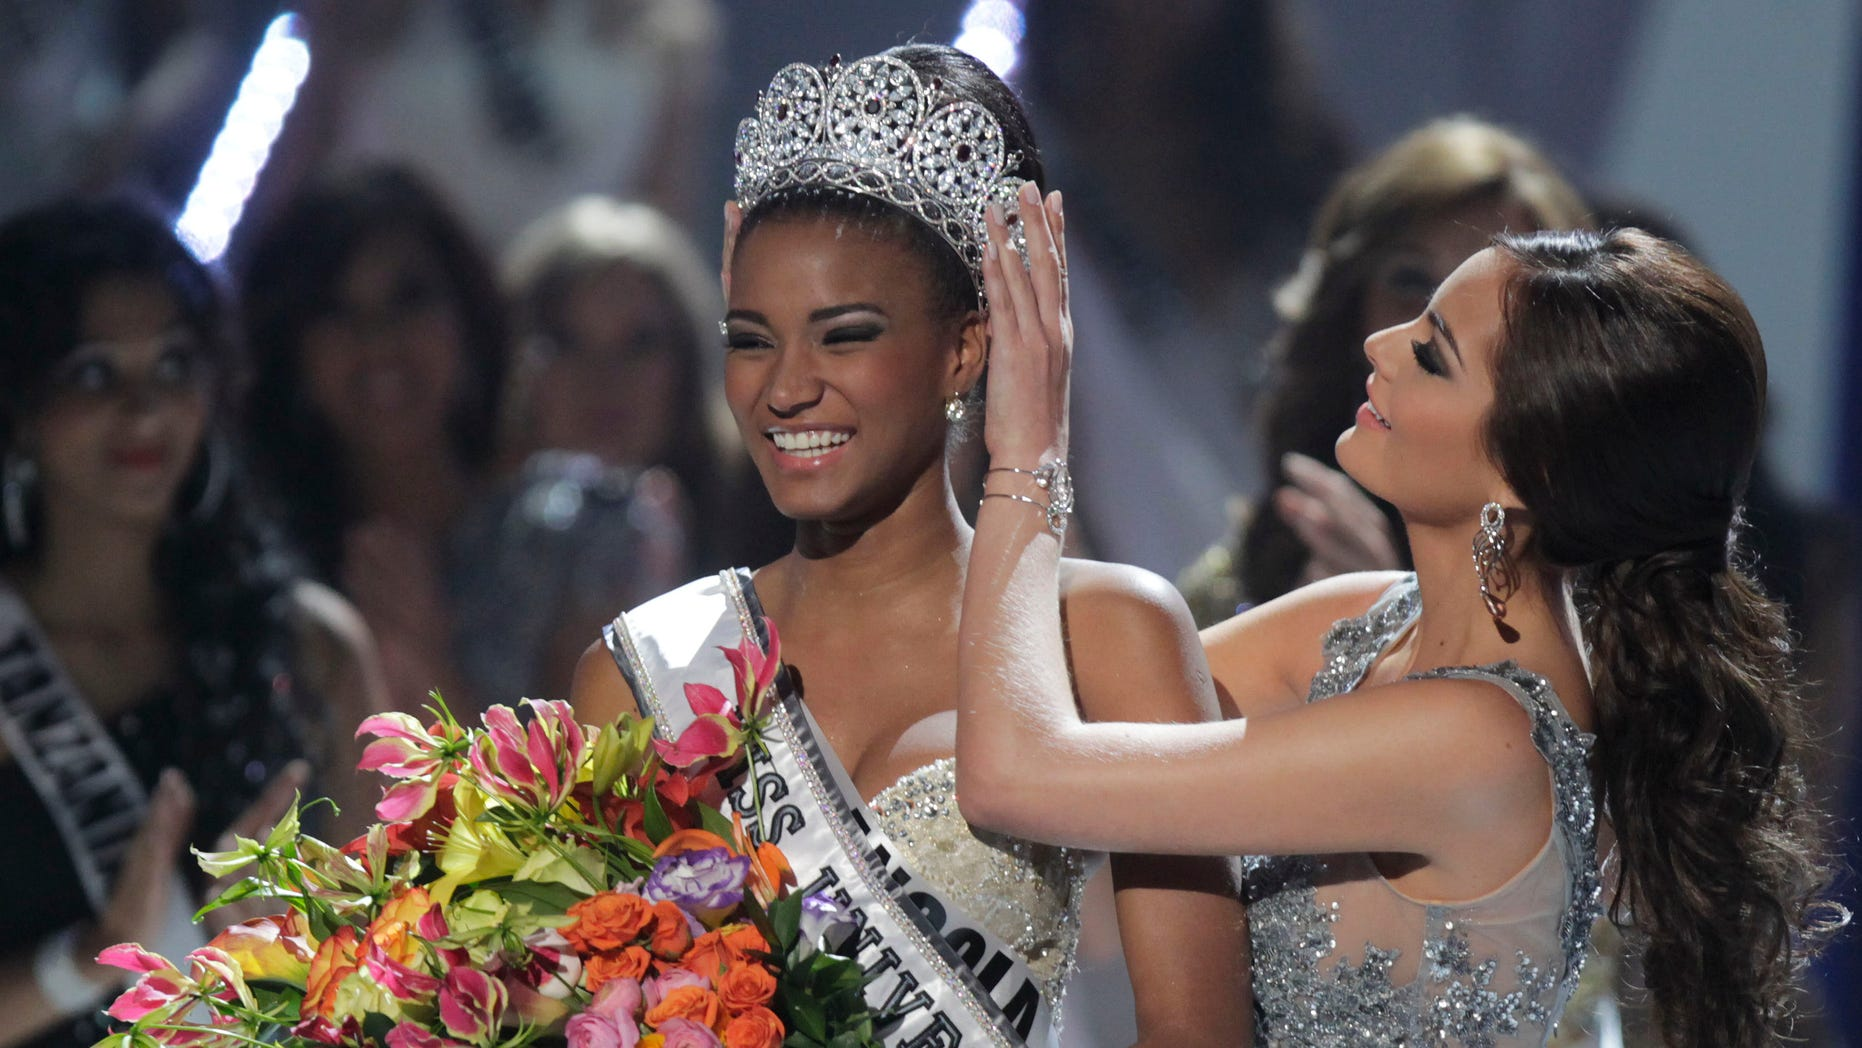 Sept. 12: Miss Angola Leila Lopes, left, is crowned Miss Universe 2011 by Miss Universe 2010 Ximena Navarrete, of Mexico, in Sao Paulo, Brazil.